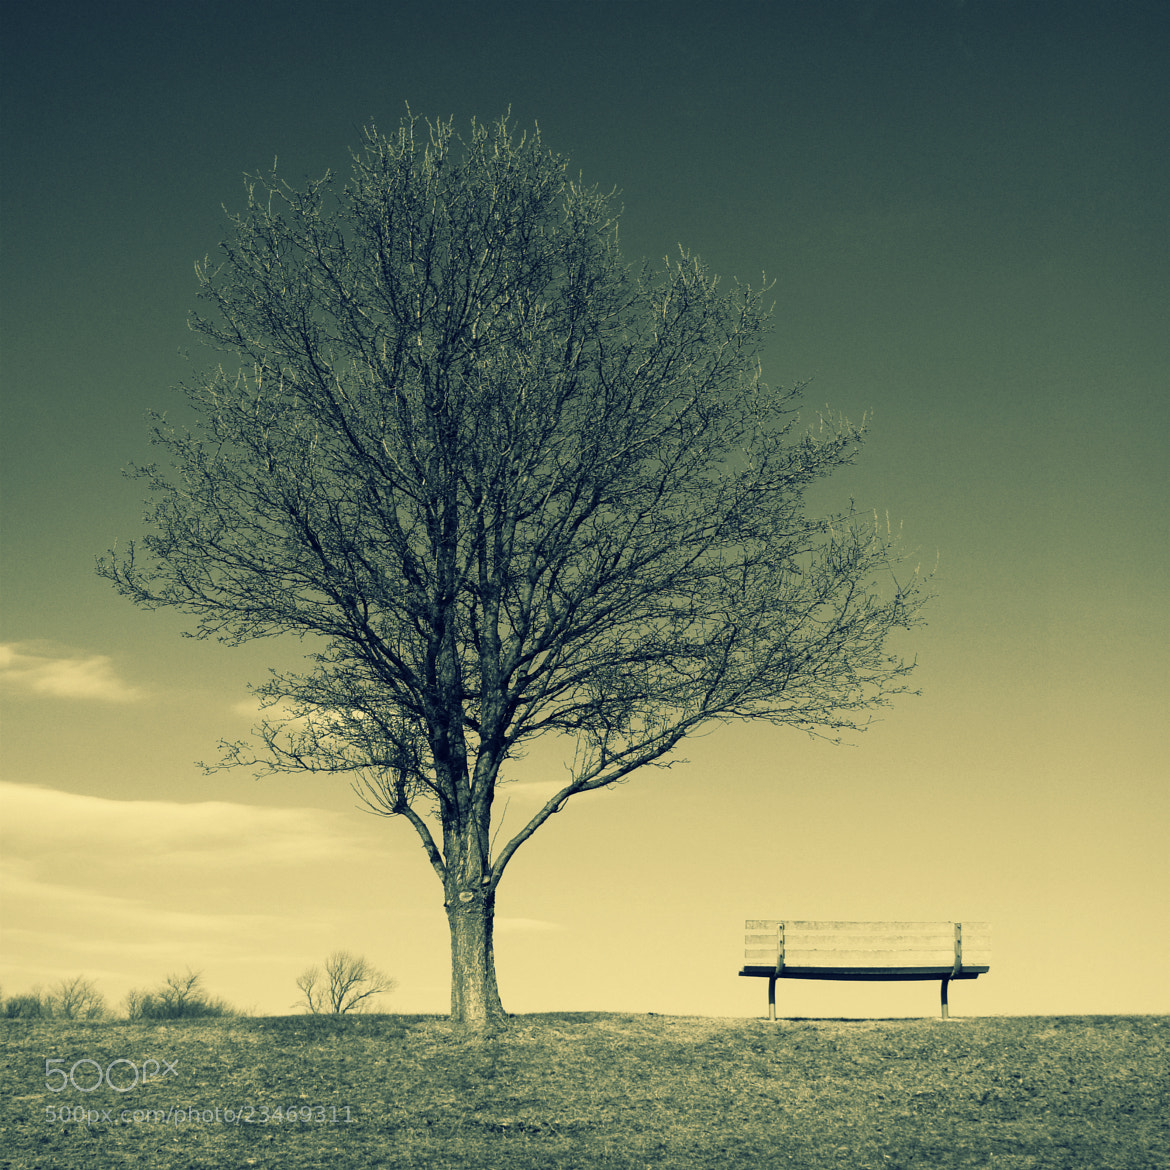 Photograph Solitude by JC Shamrock on 500px